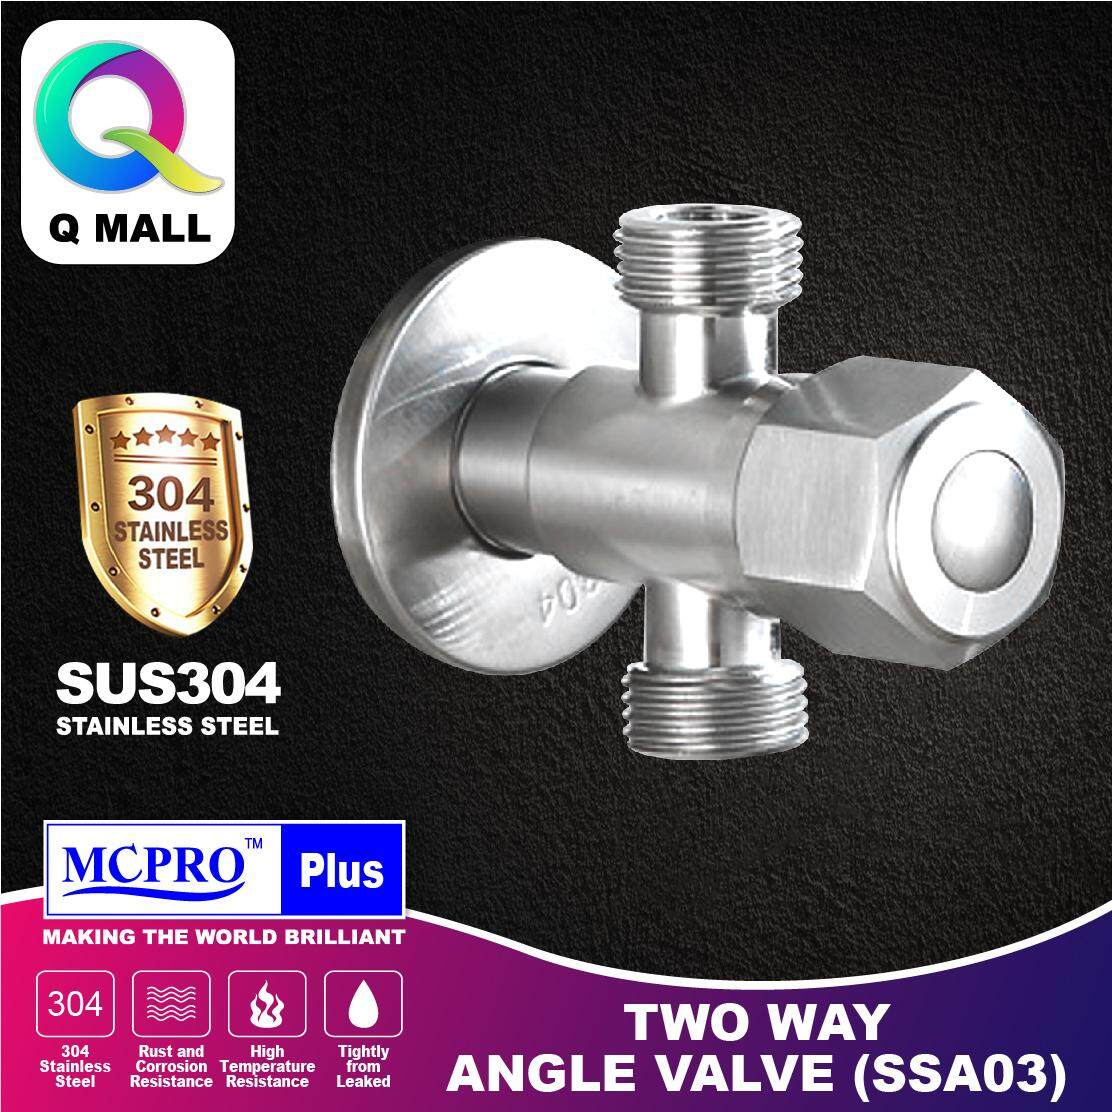 MCPRO PLUS SUS304 Stainless Steel Bathroom faucet TWO WAY ANGLE VALVE (SSA03)